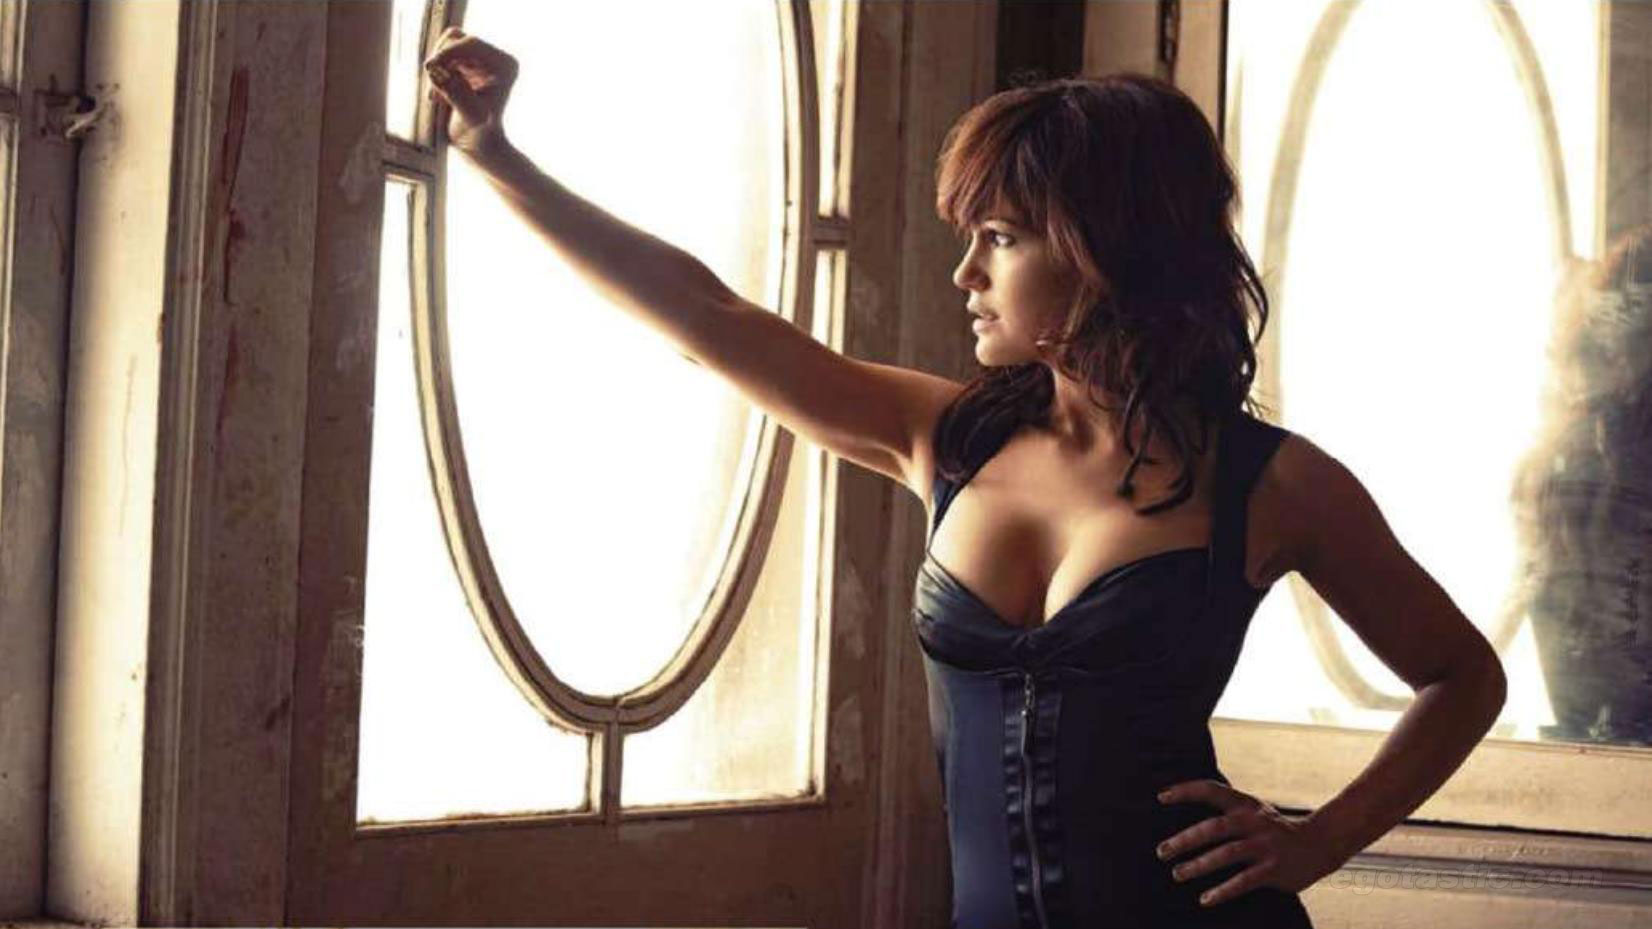 know-carla-gugino-s-height-weight-3